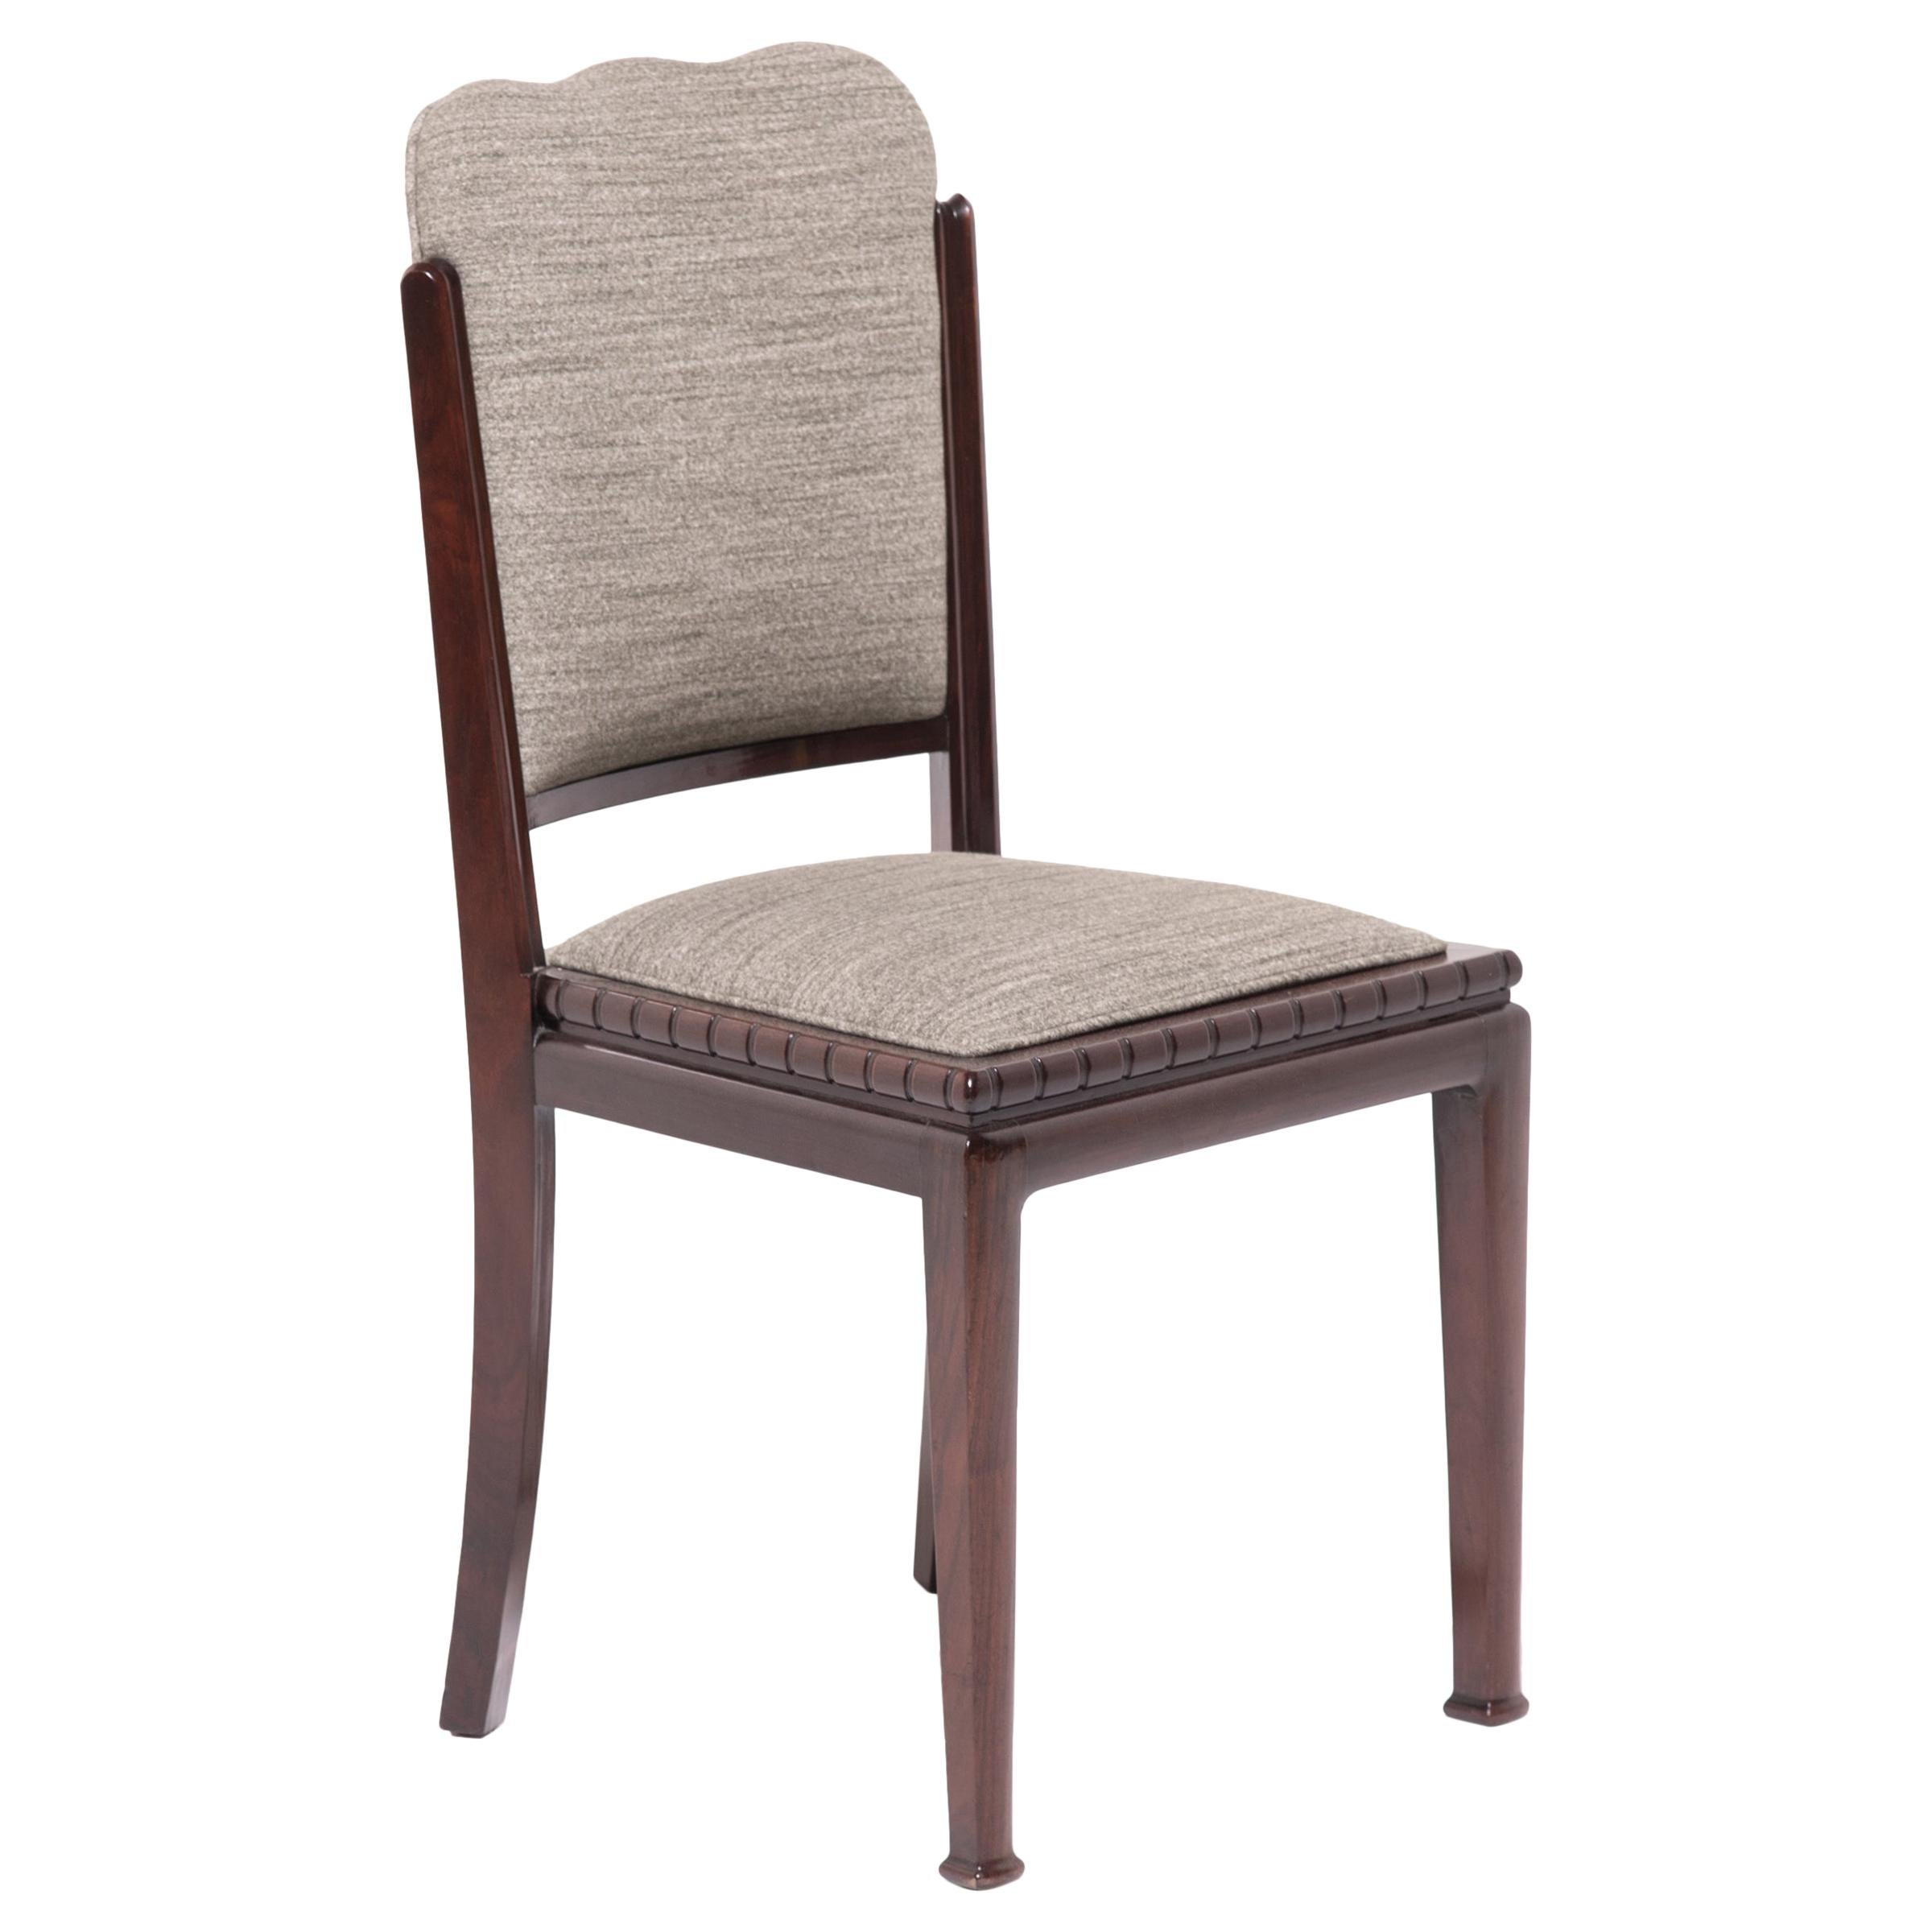 Chinese Art Deco Dining Chair, circa 1920-1930s